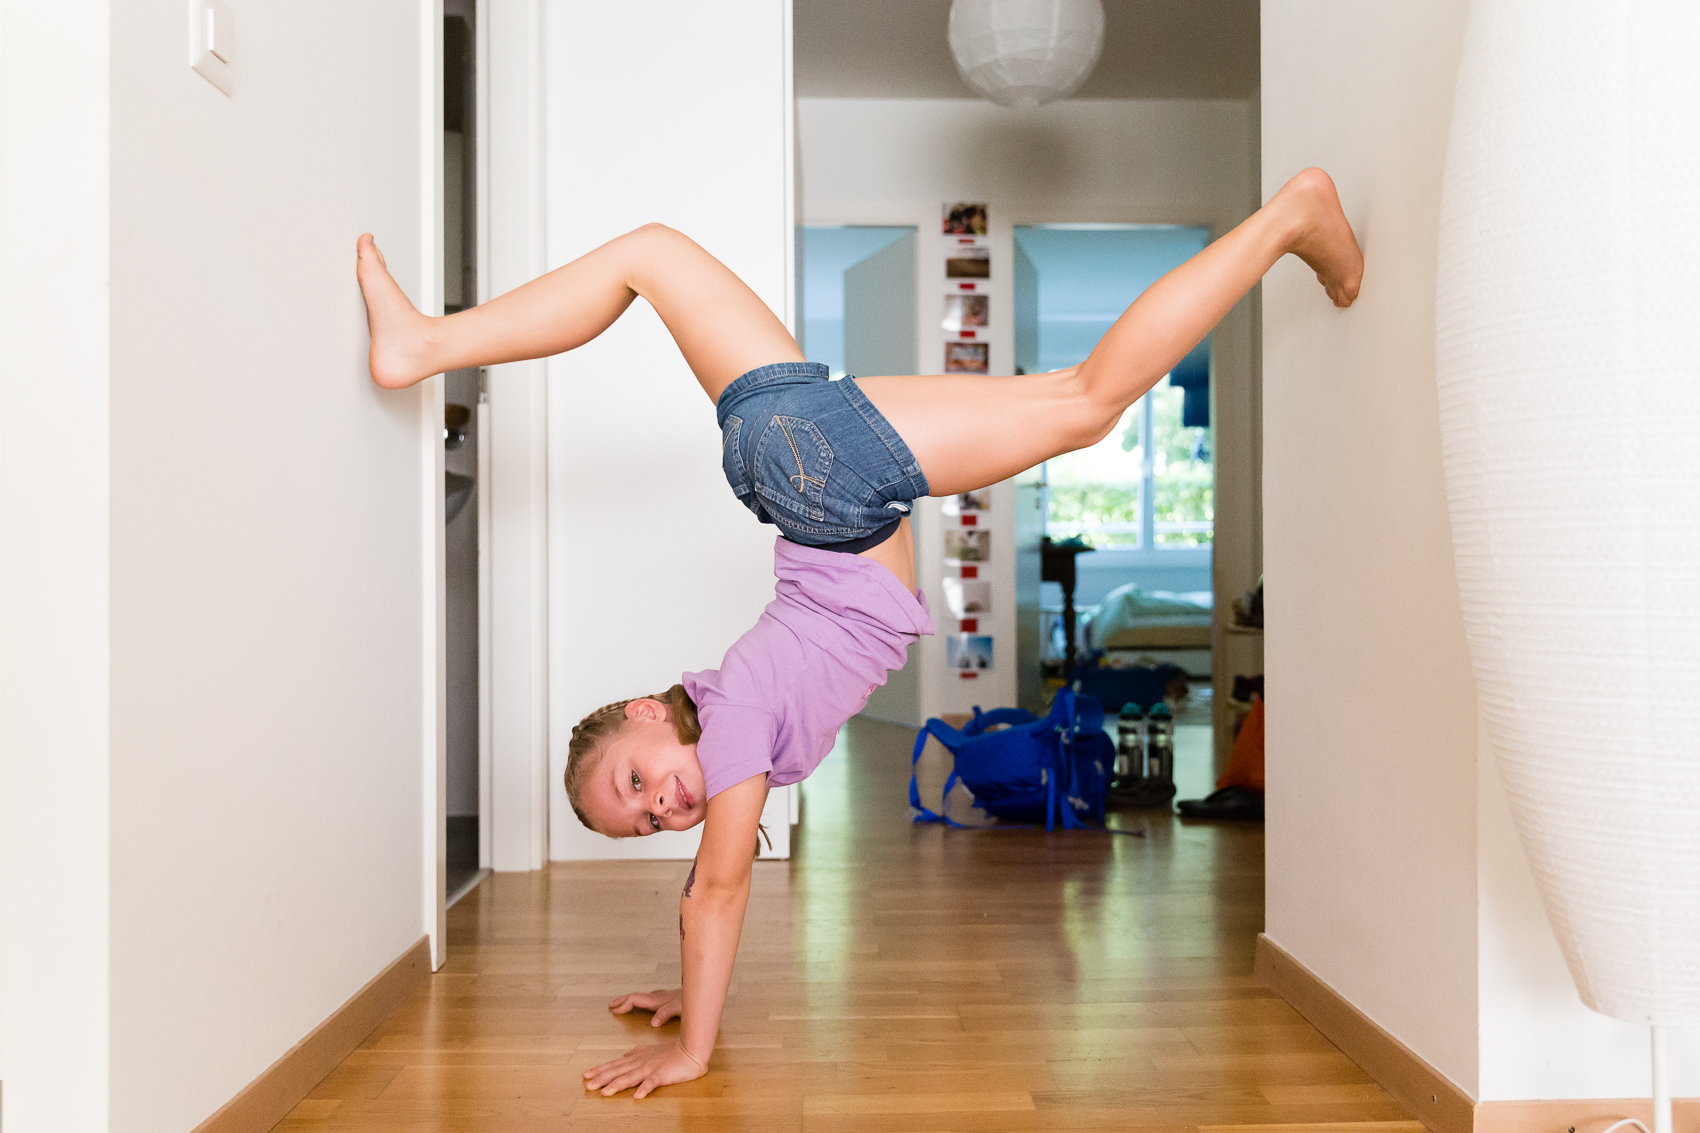 A little light stretching before we walk to school.